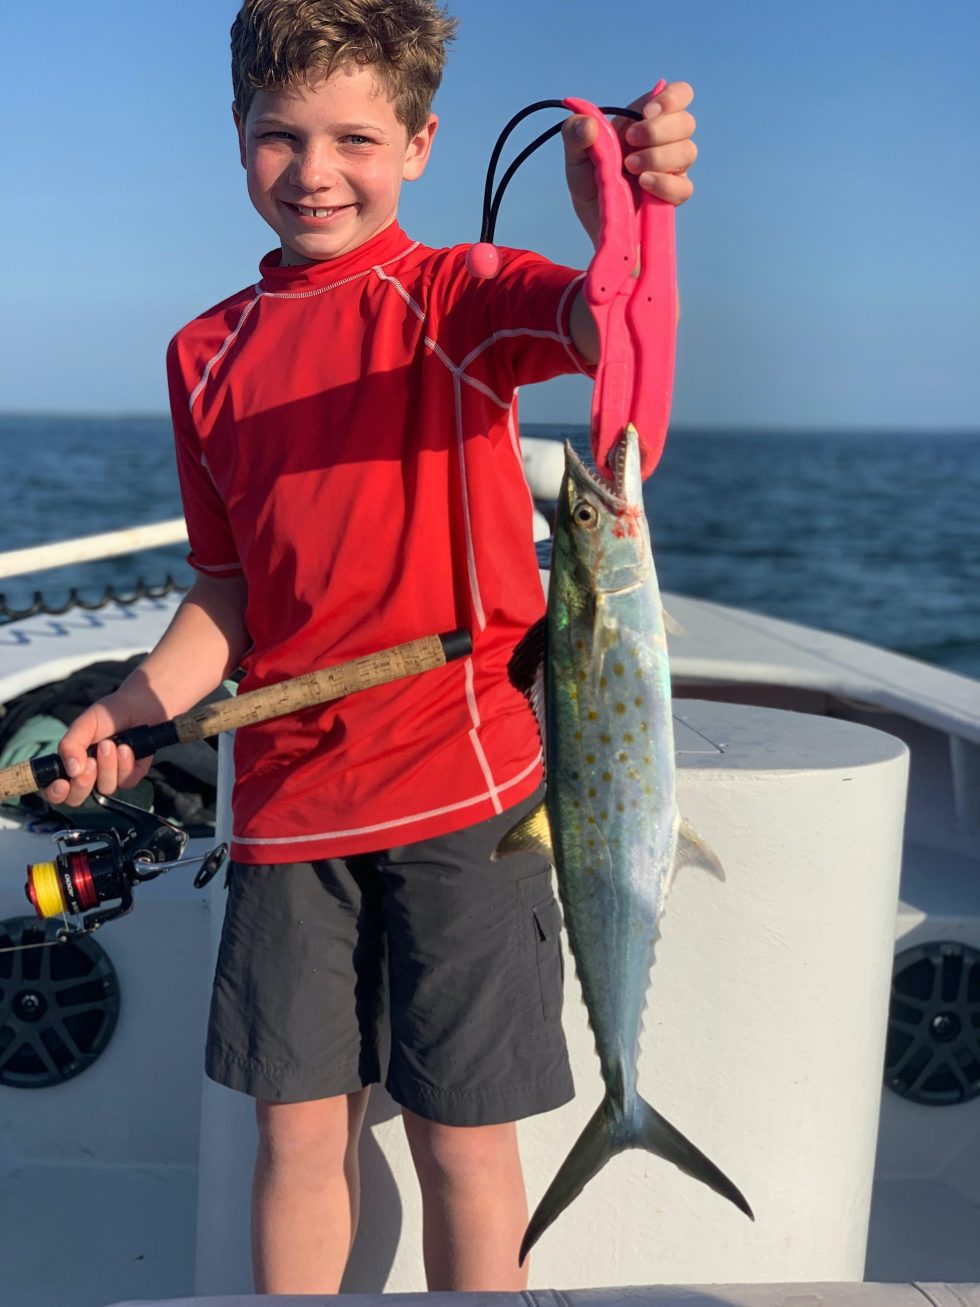 Spanish Mackerel, Sanibel Island Fishing, Catch & Release, Captiva Island, Tuesday, March 24, 2020.